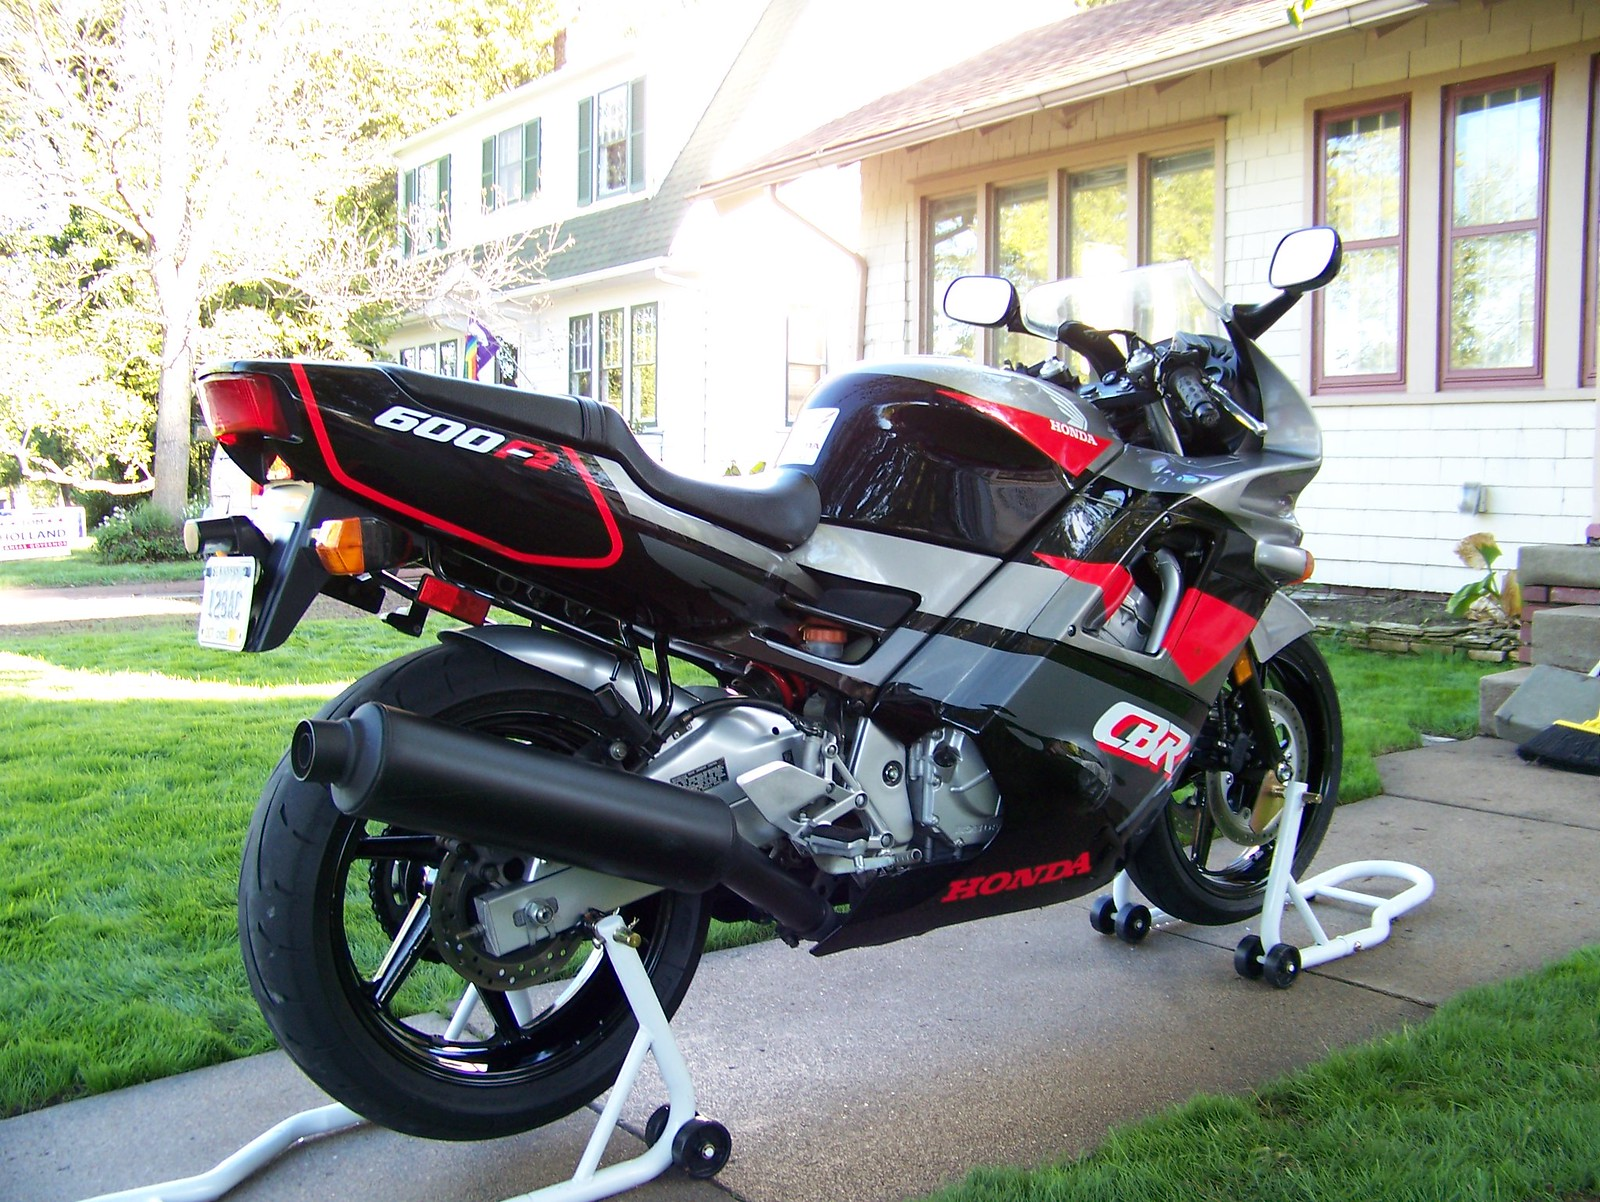 Change to gravity fed fuel? - CBR Forum - Enthusiast forums for